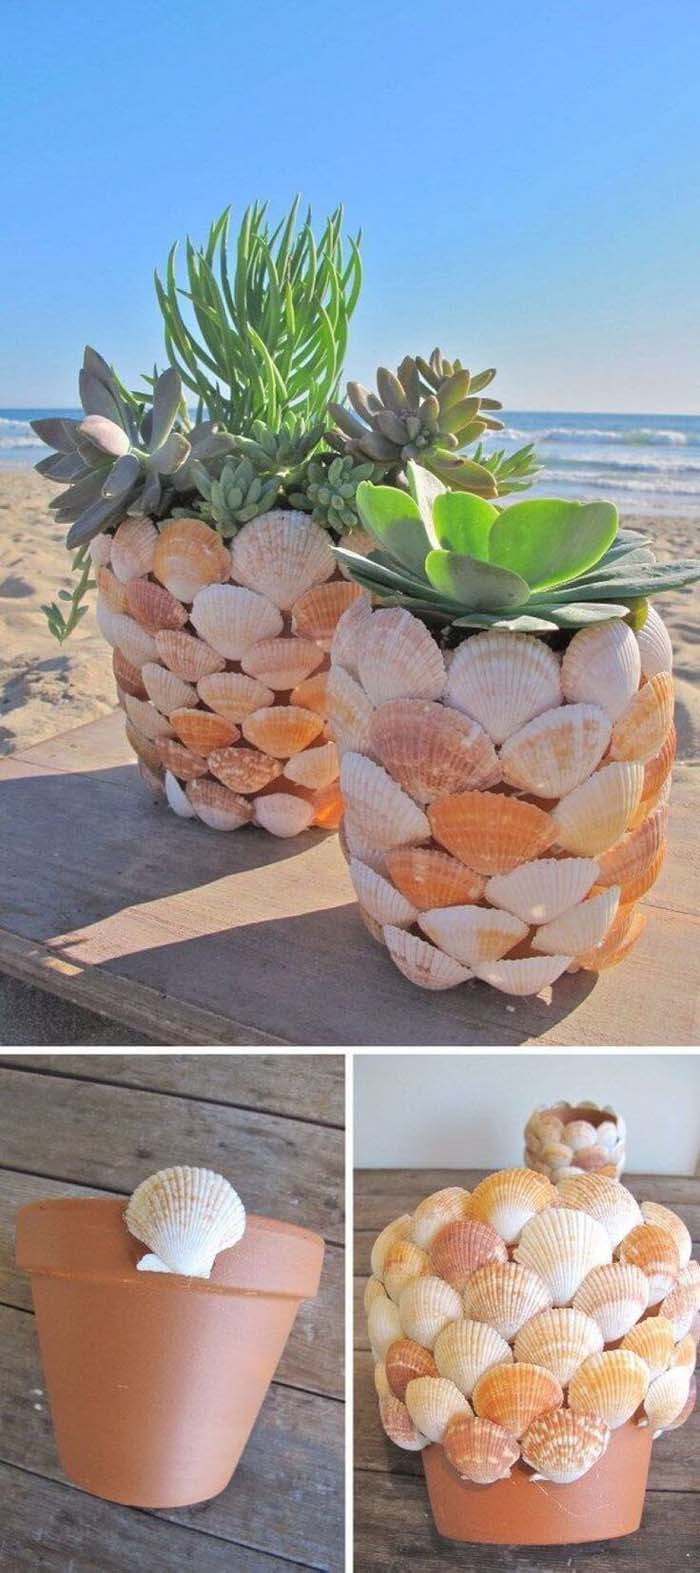 Shell Covered Seaside Plant Displays #diy #flowerpot #garden #flower #decorhomeideas